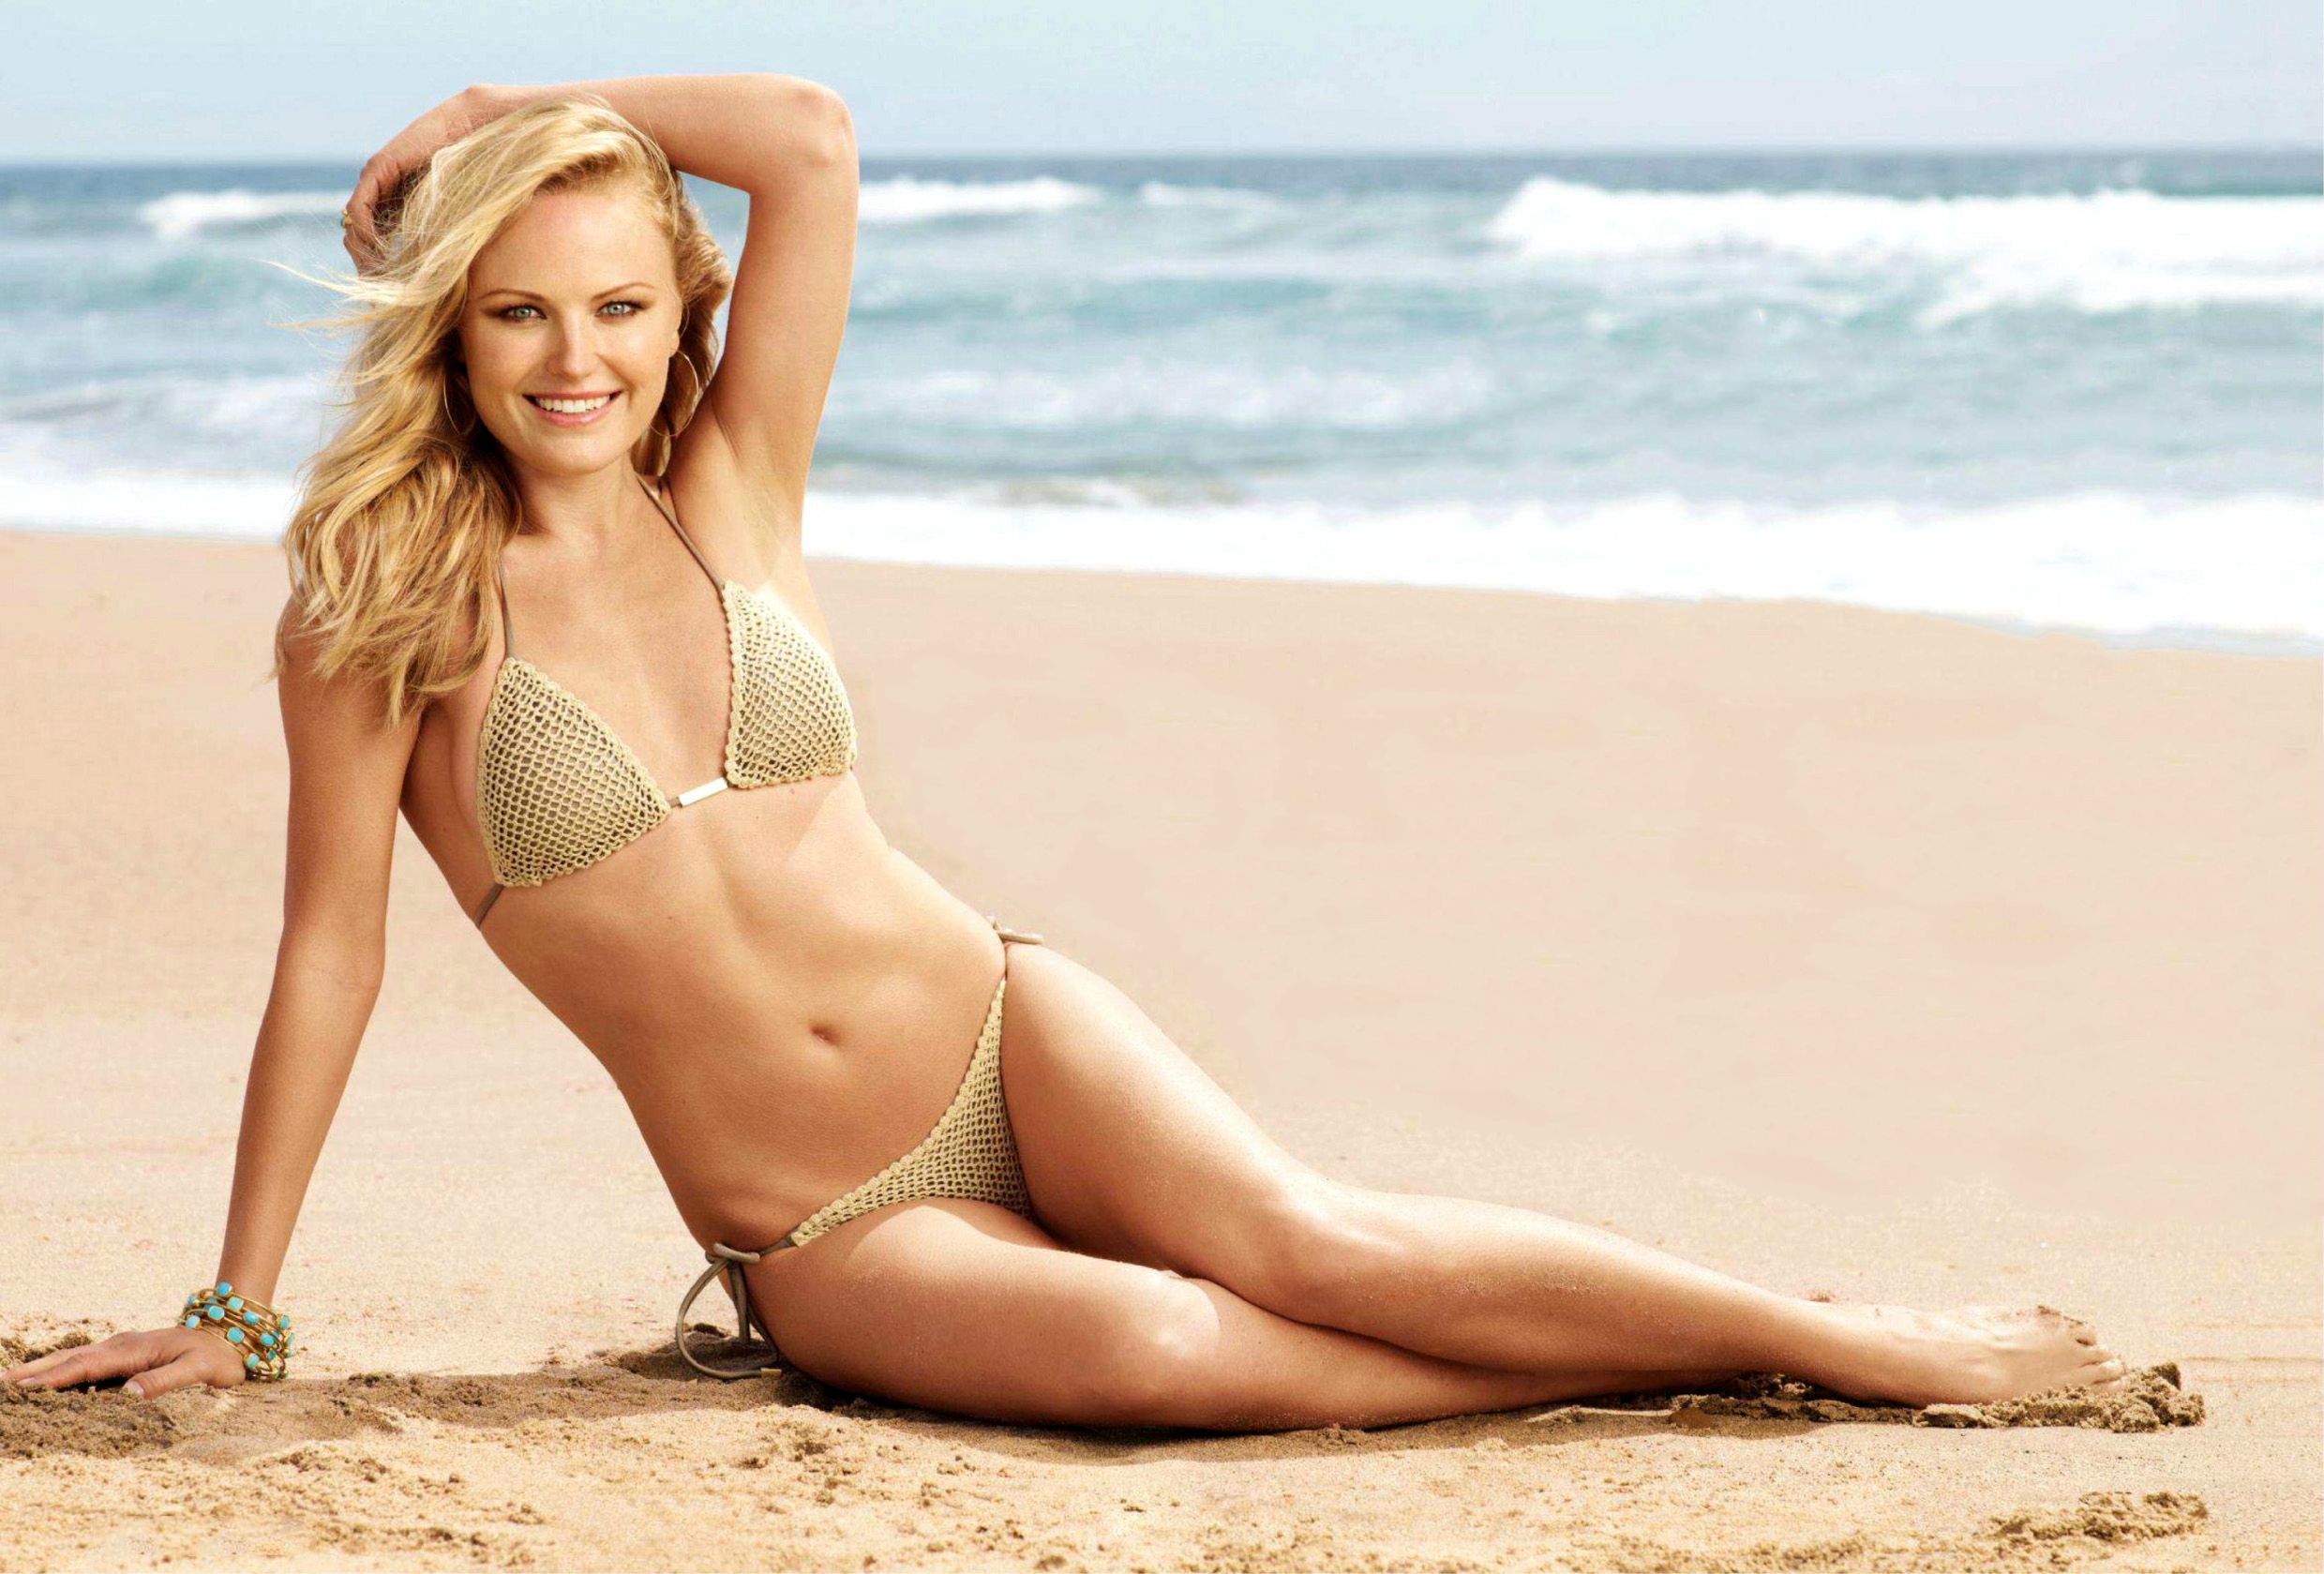 Malin Åkerman on Beach